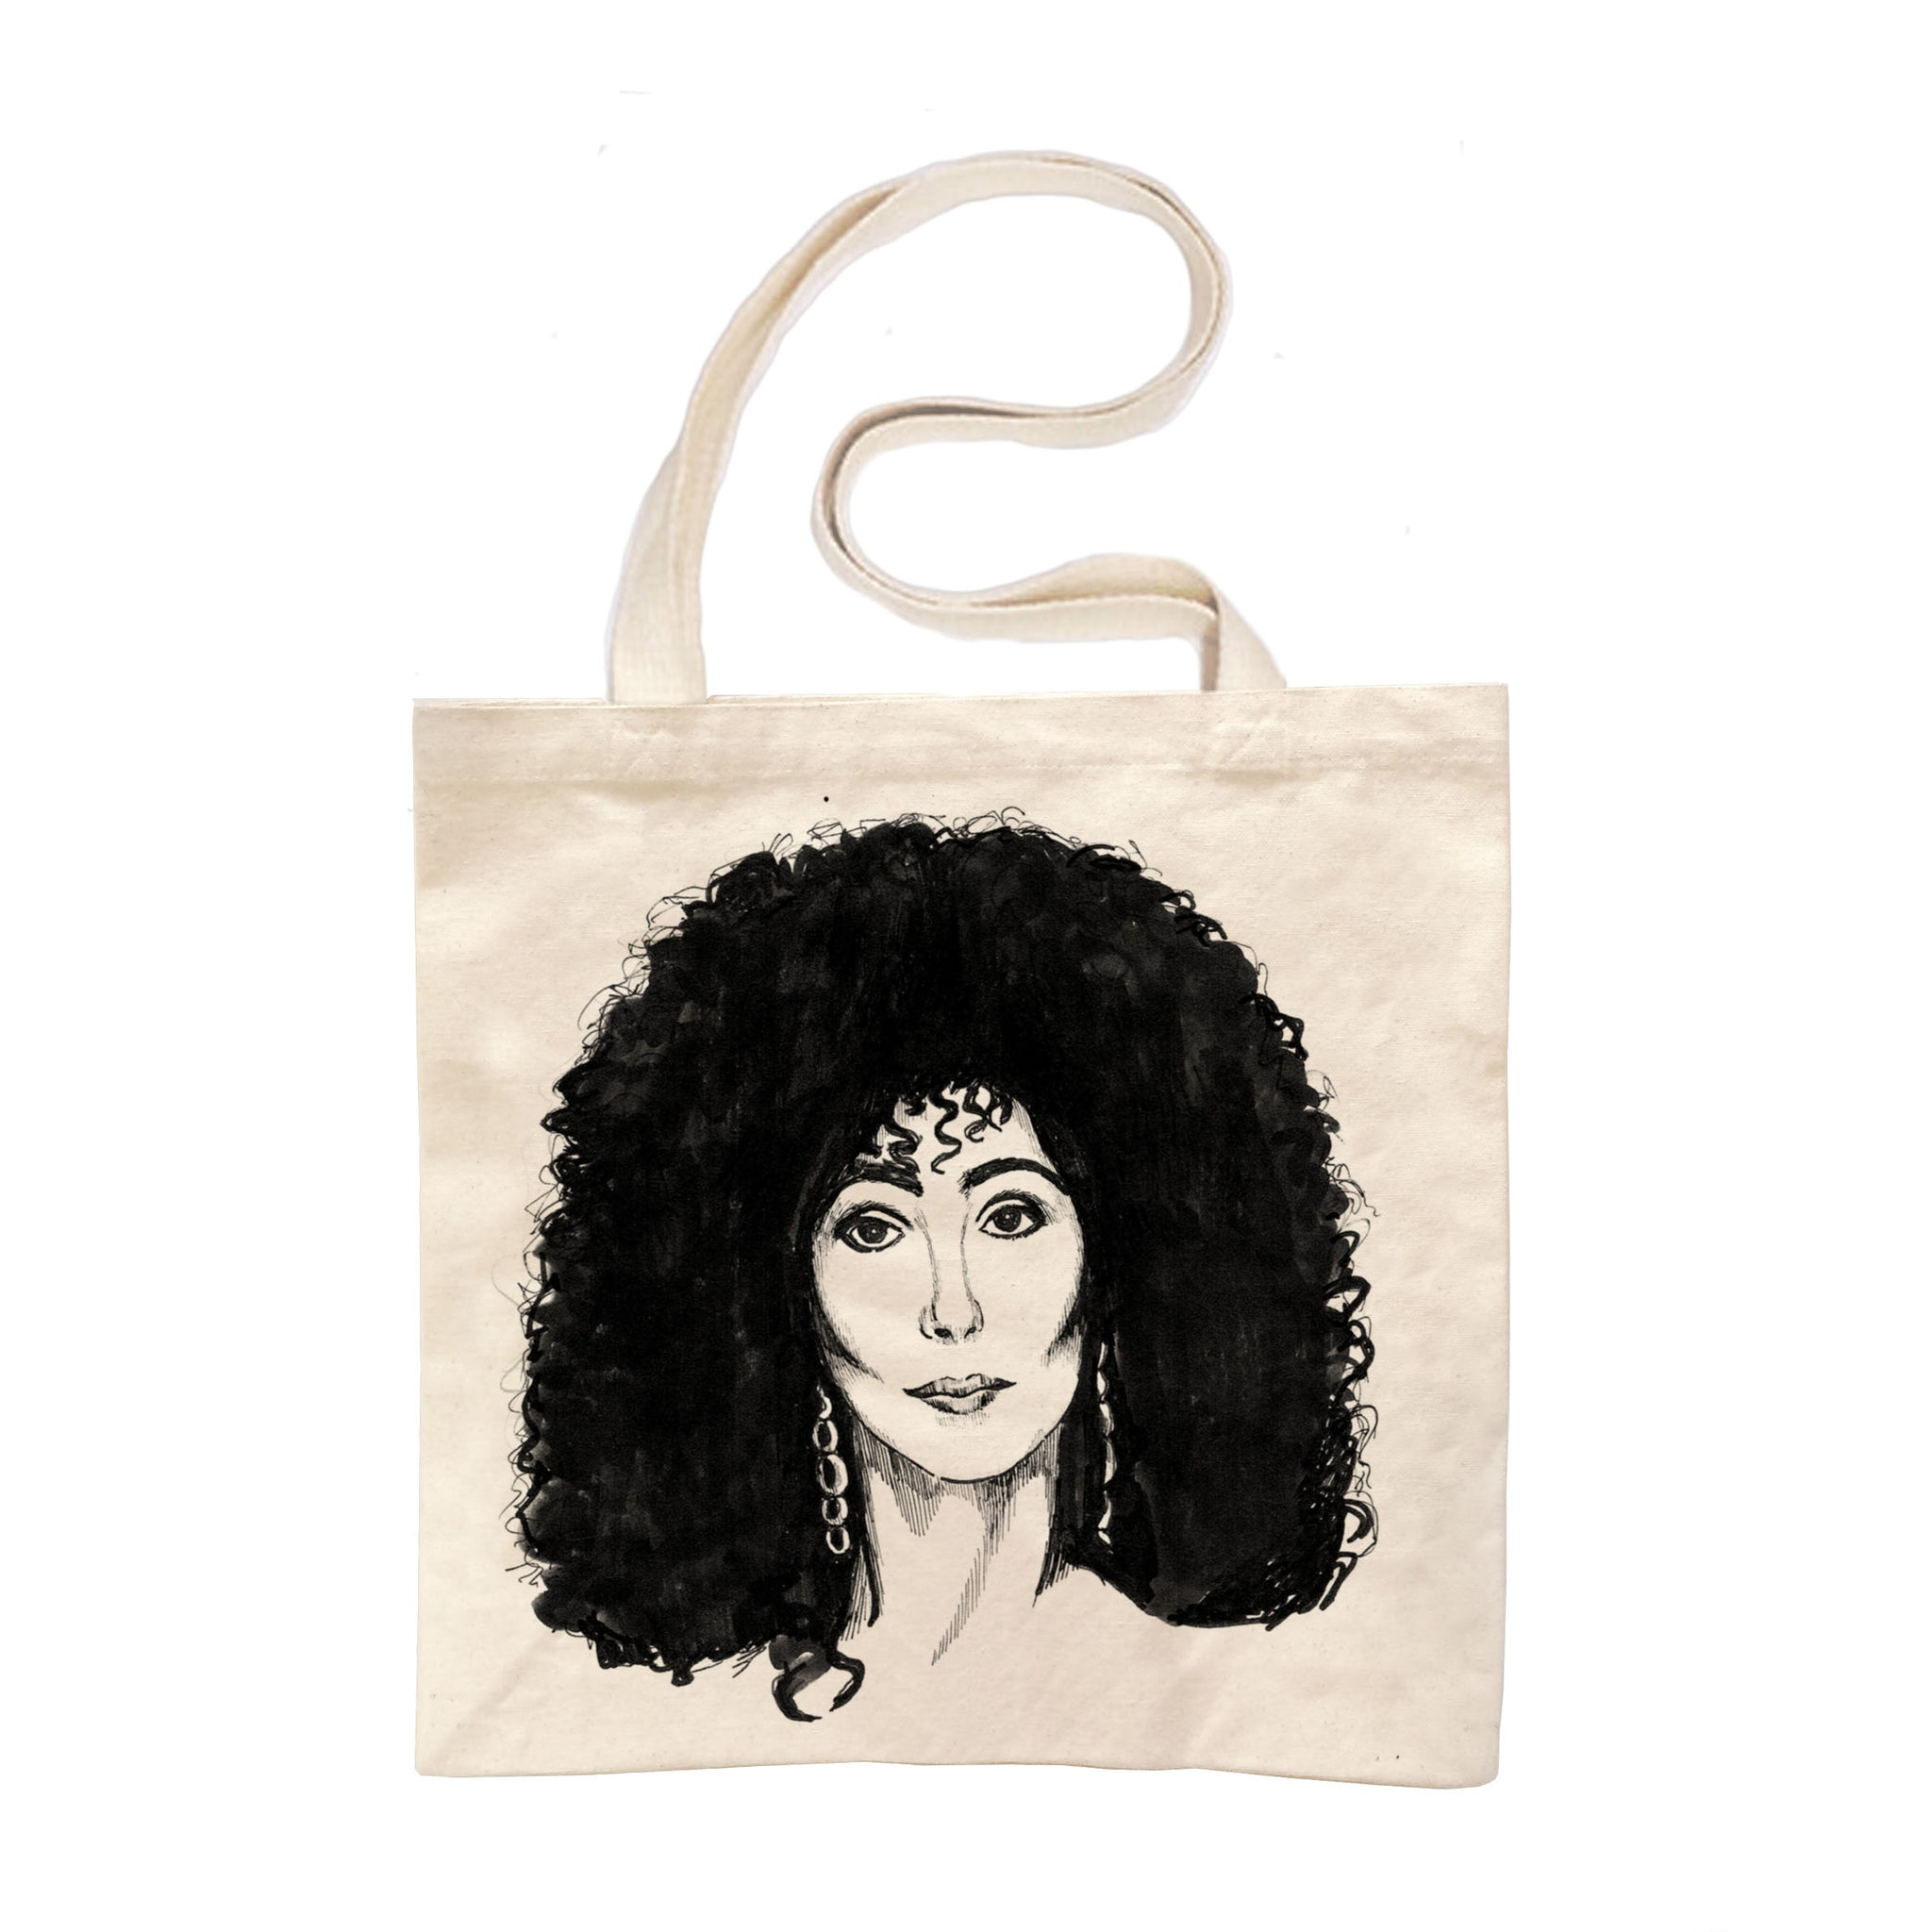 Cher. The Large Tote.